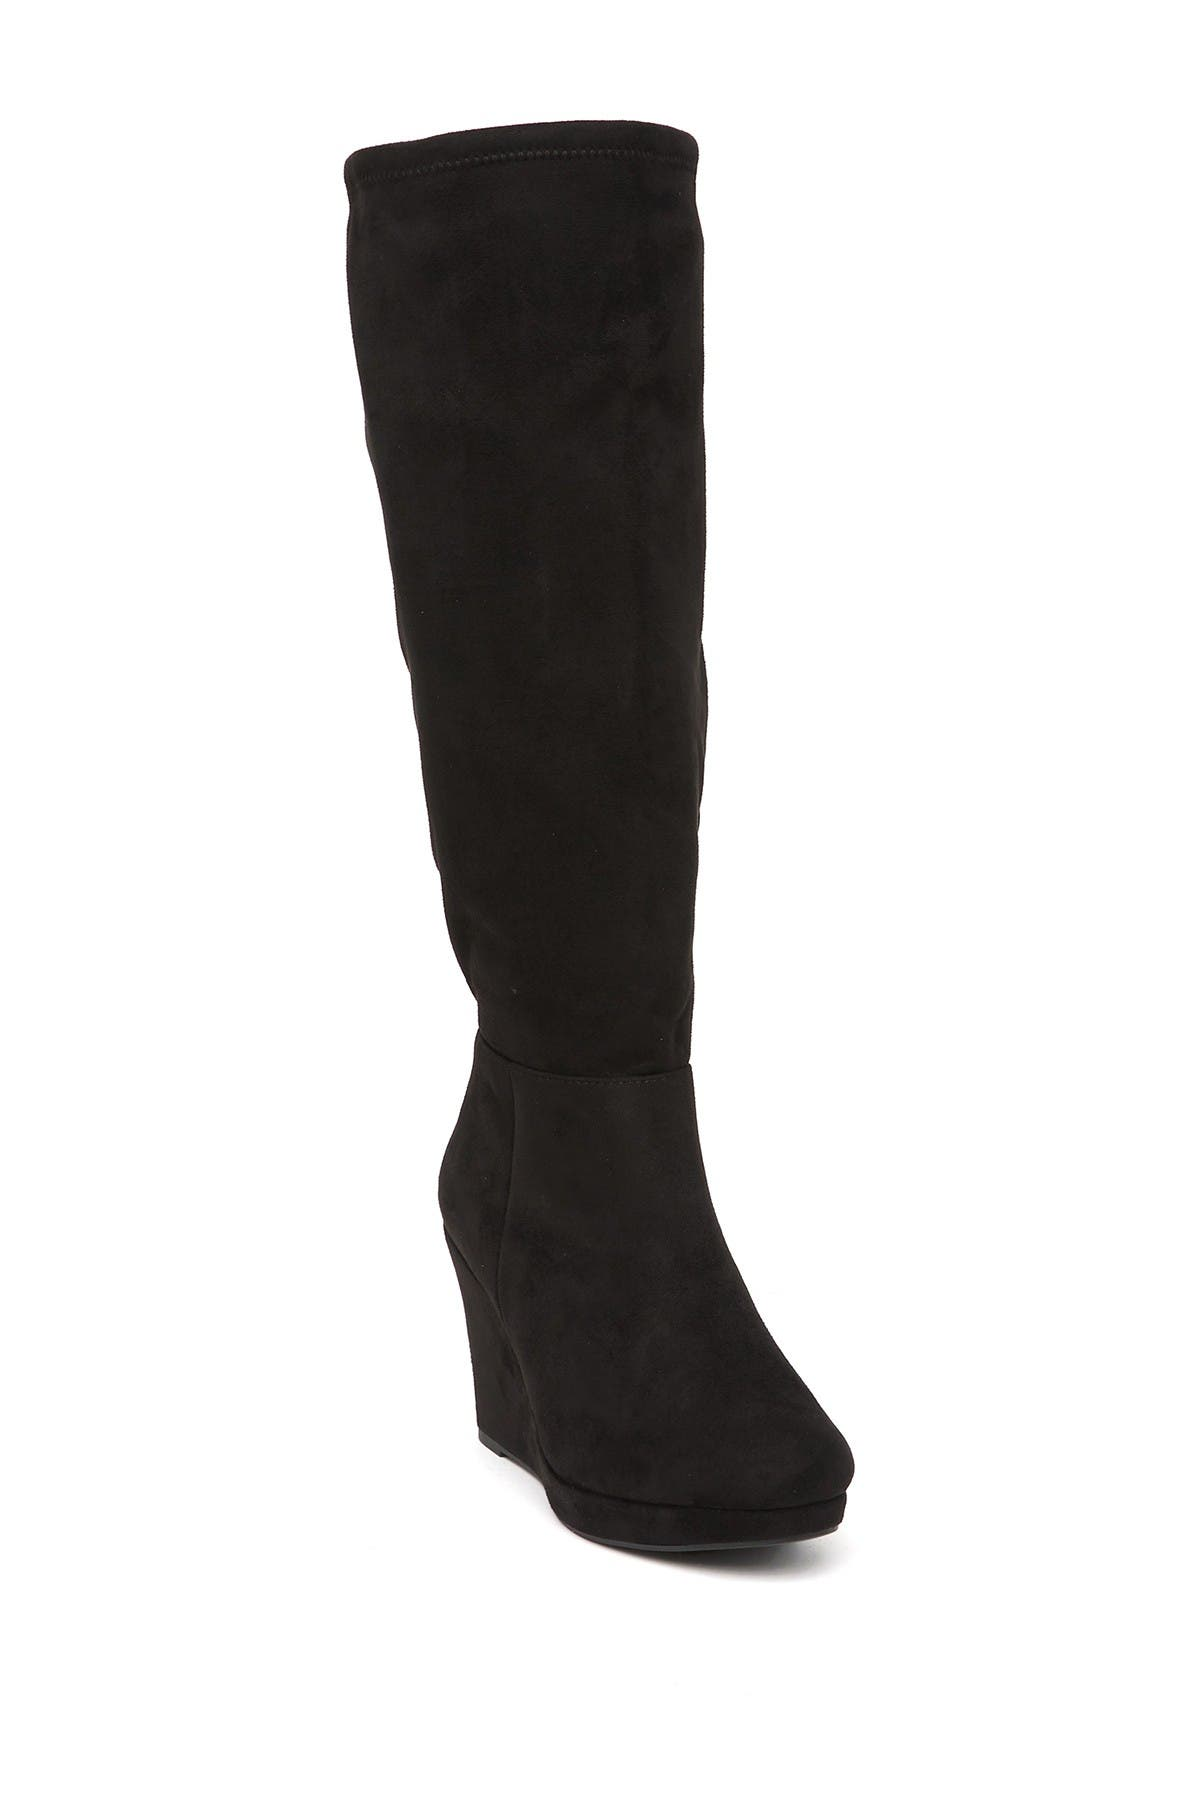 Image of Chinese Laundry Lakeside Knee High Wedge Boot